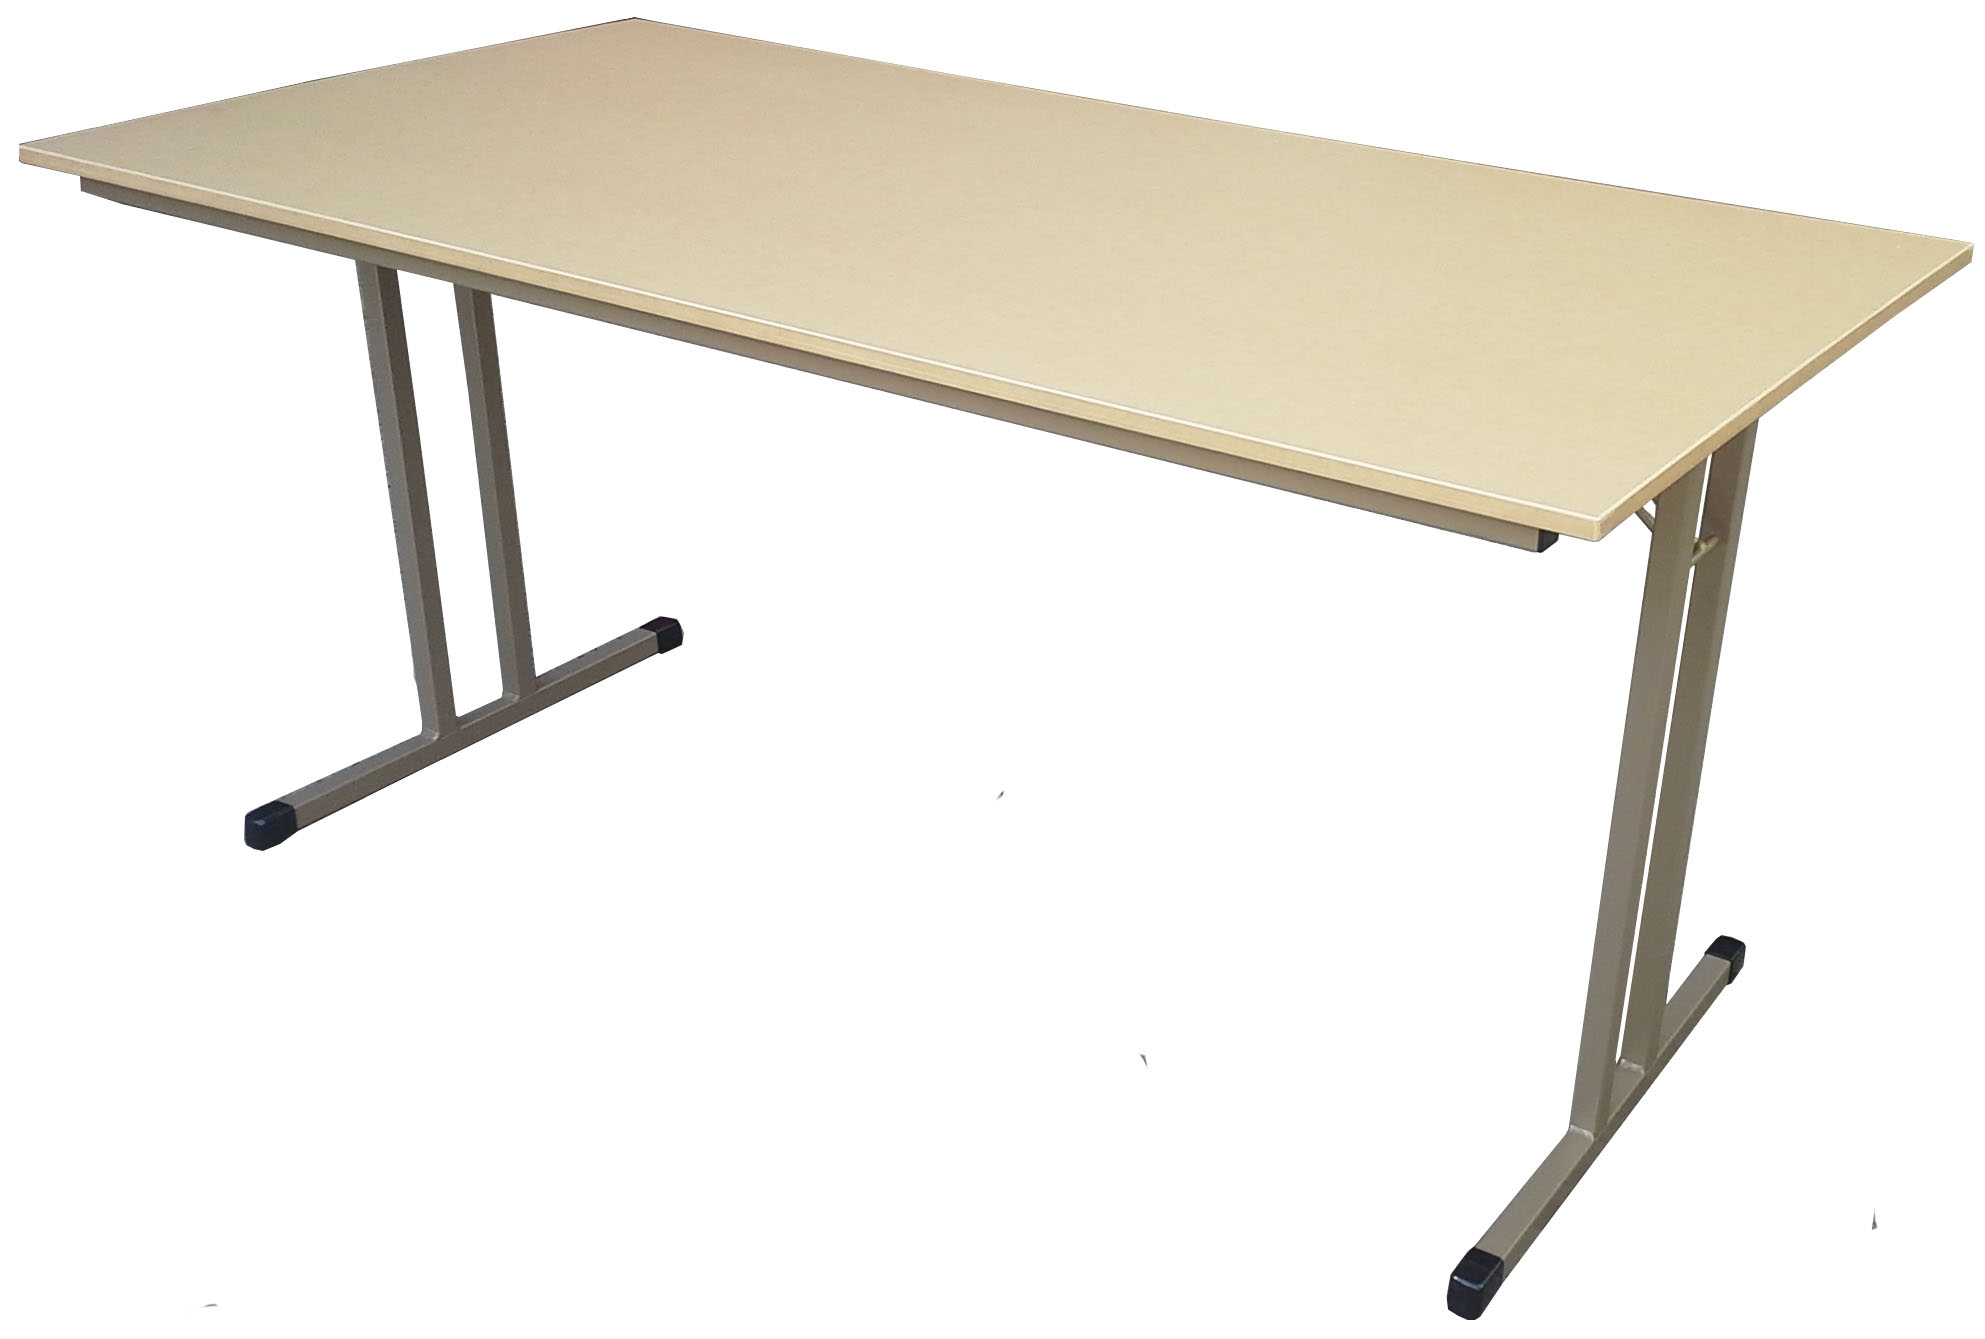 Folding Legs For Table Cheap Steel Table Legs Portable